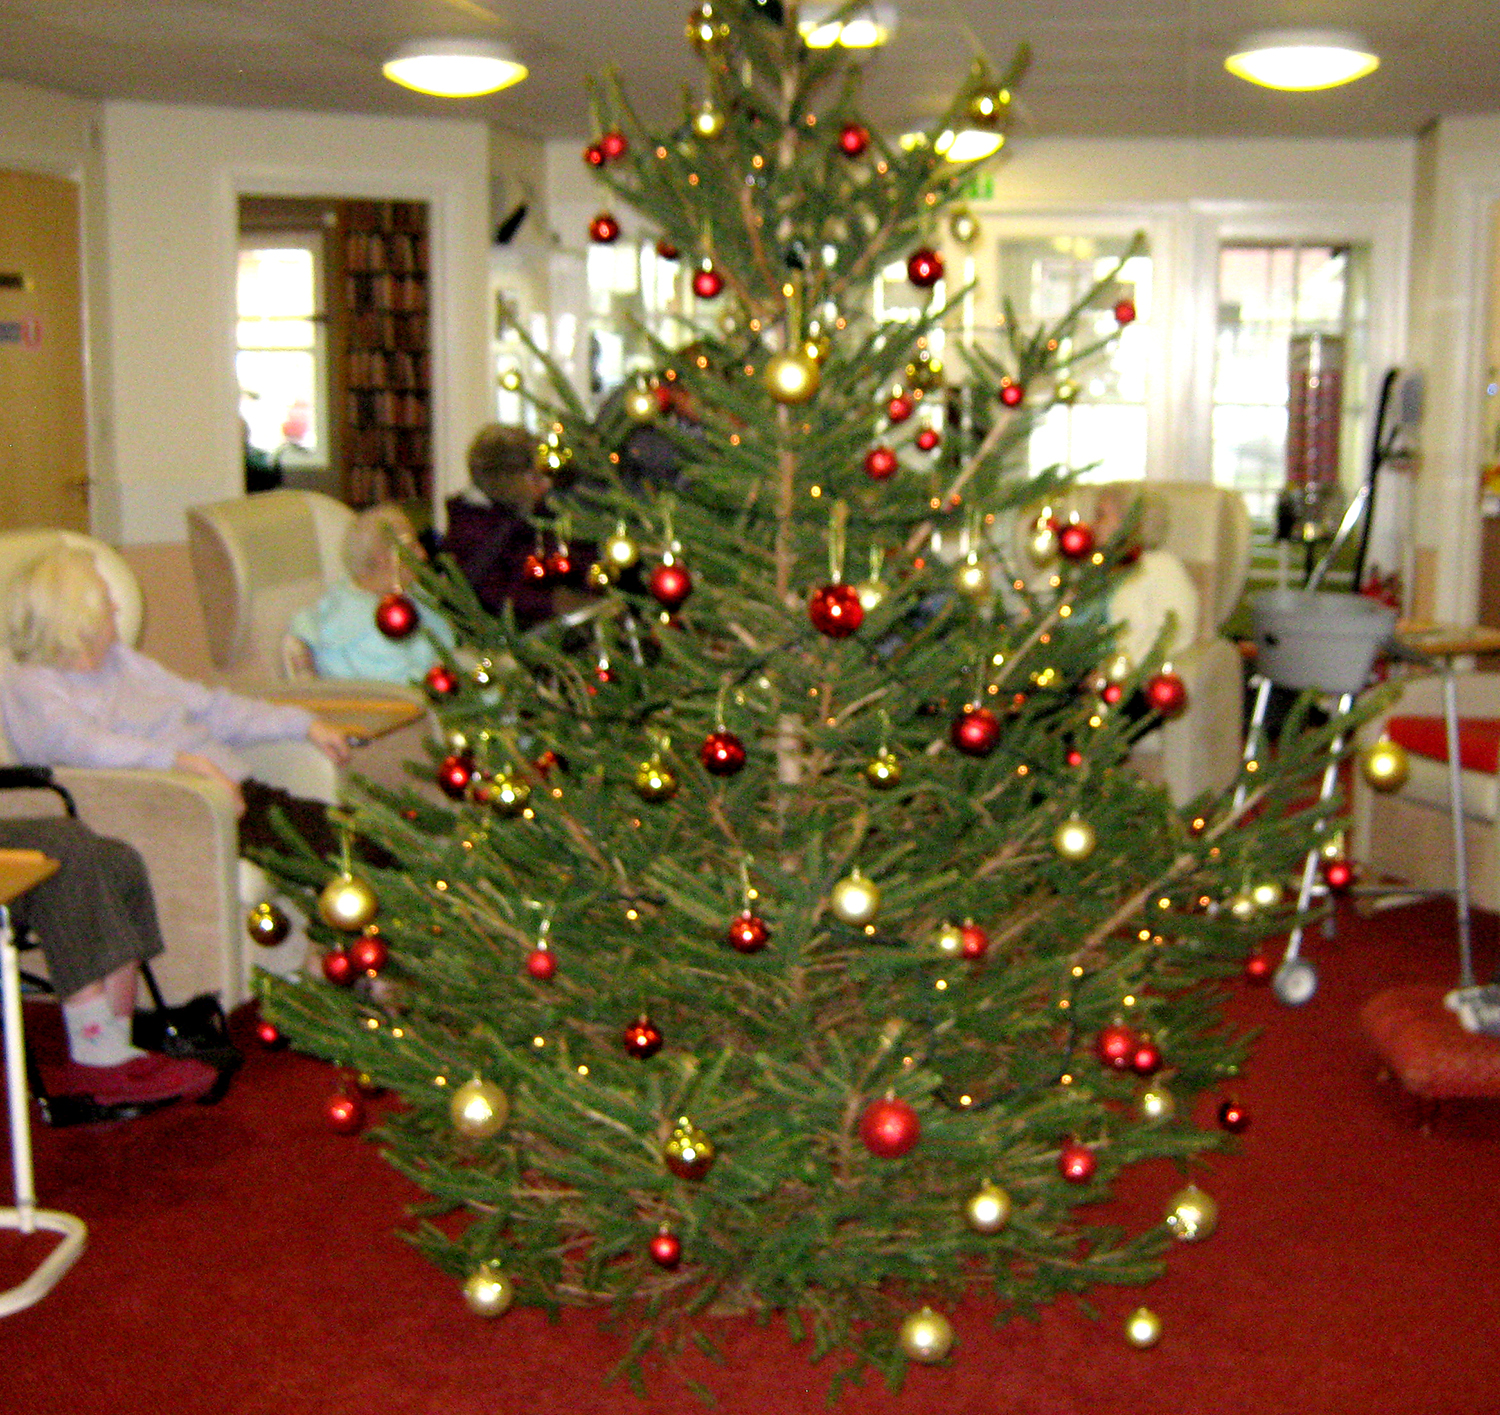 Care Home Christmas Services